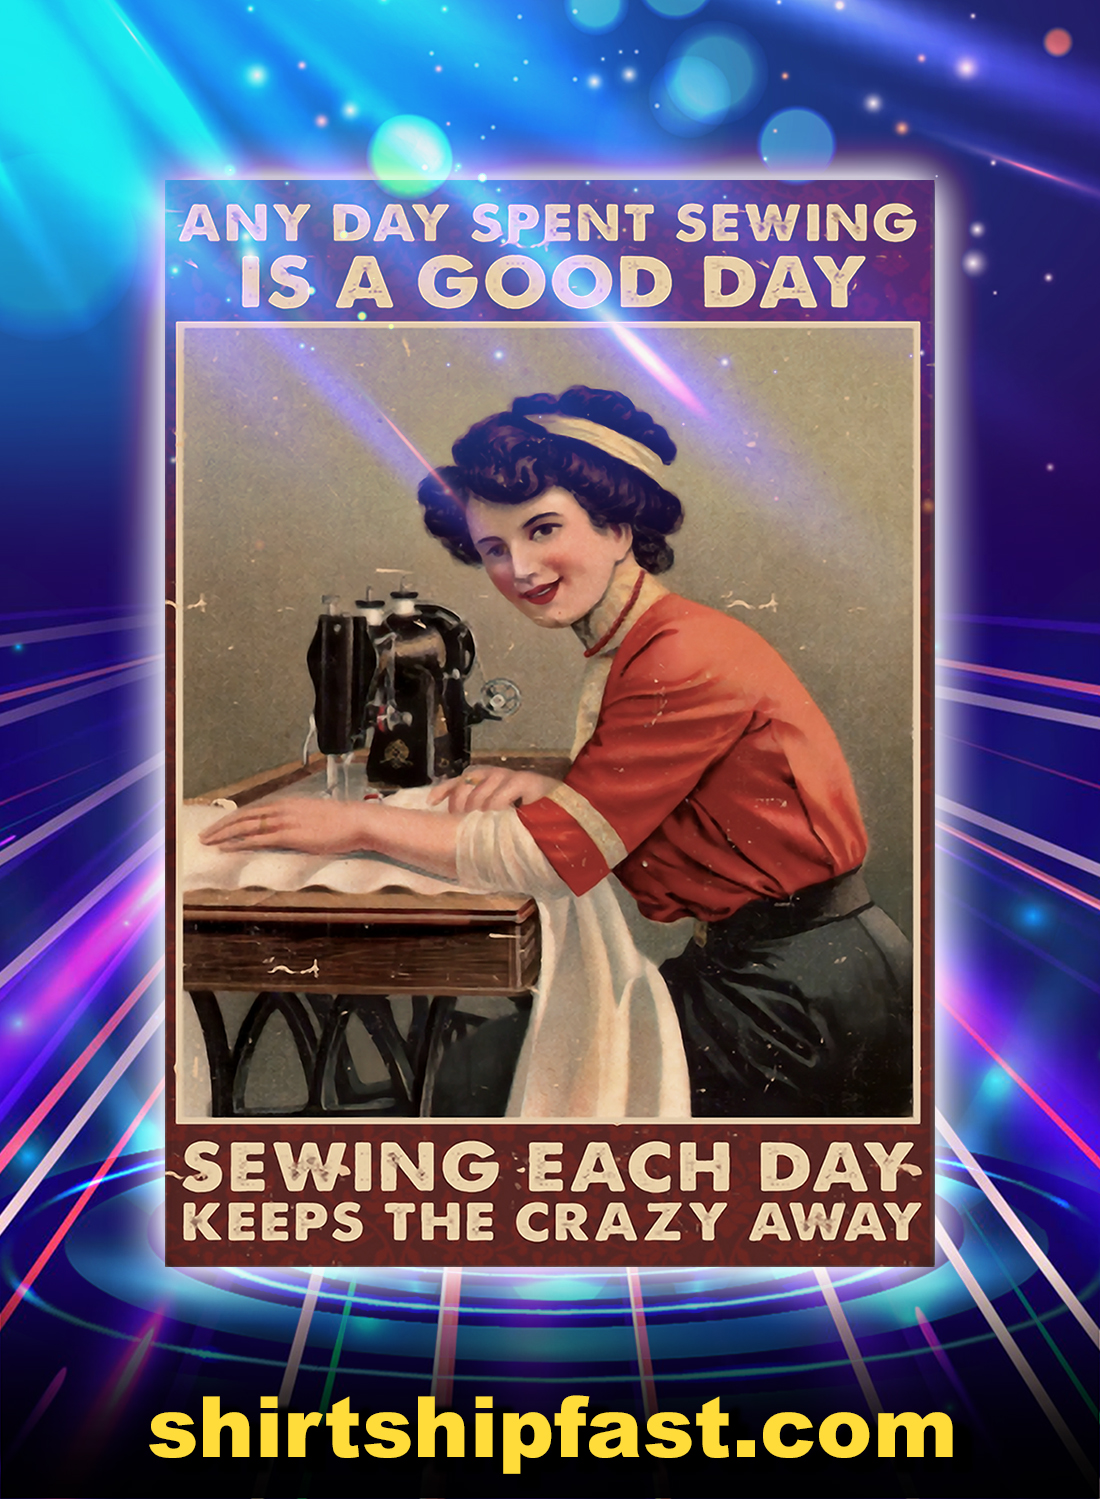 Any day spent sewing is a good day poster - A4